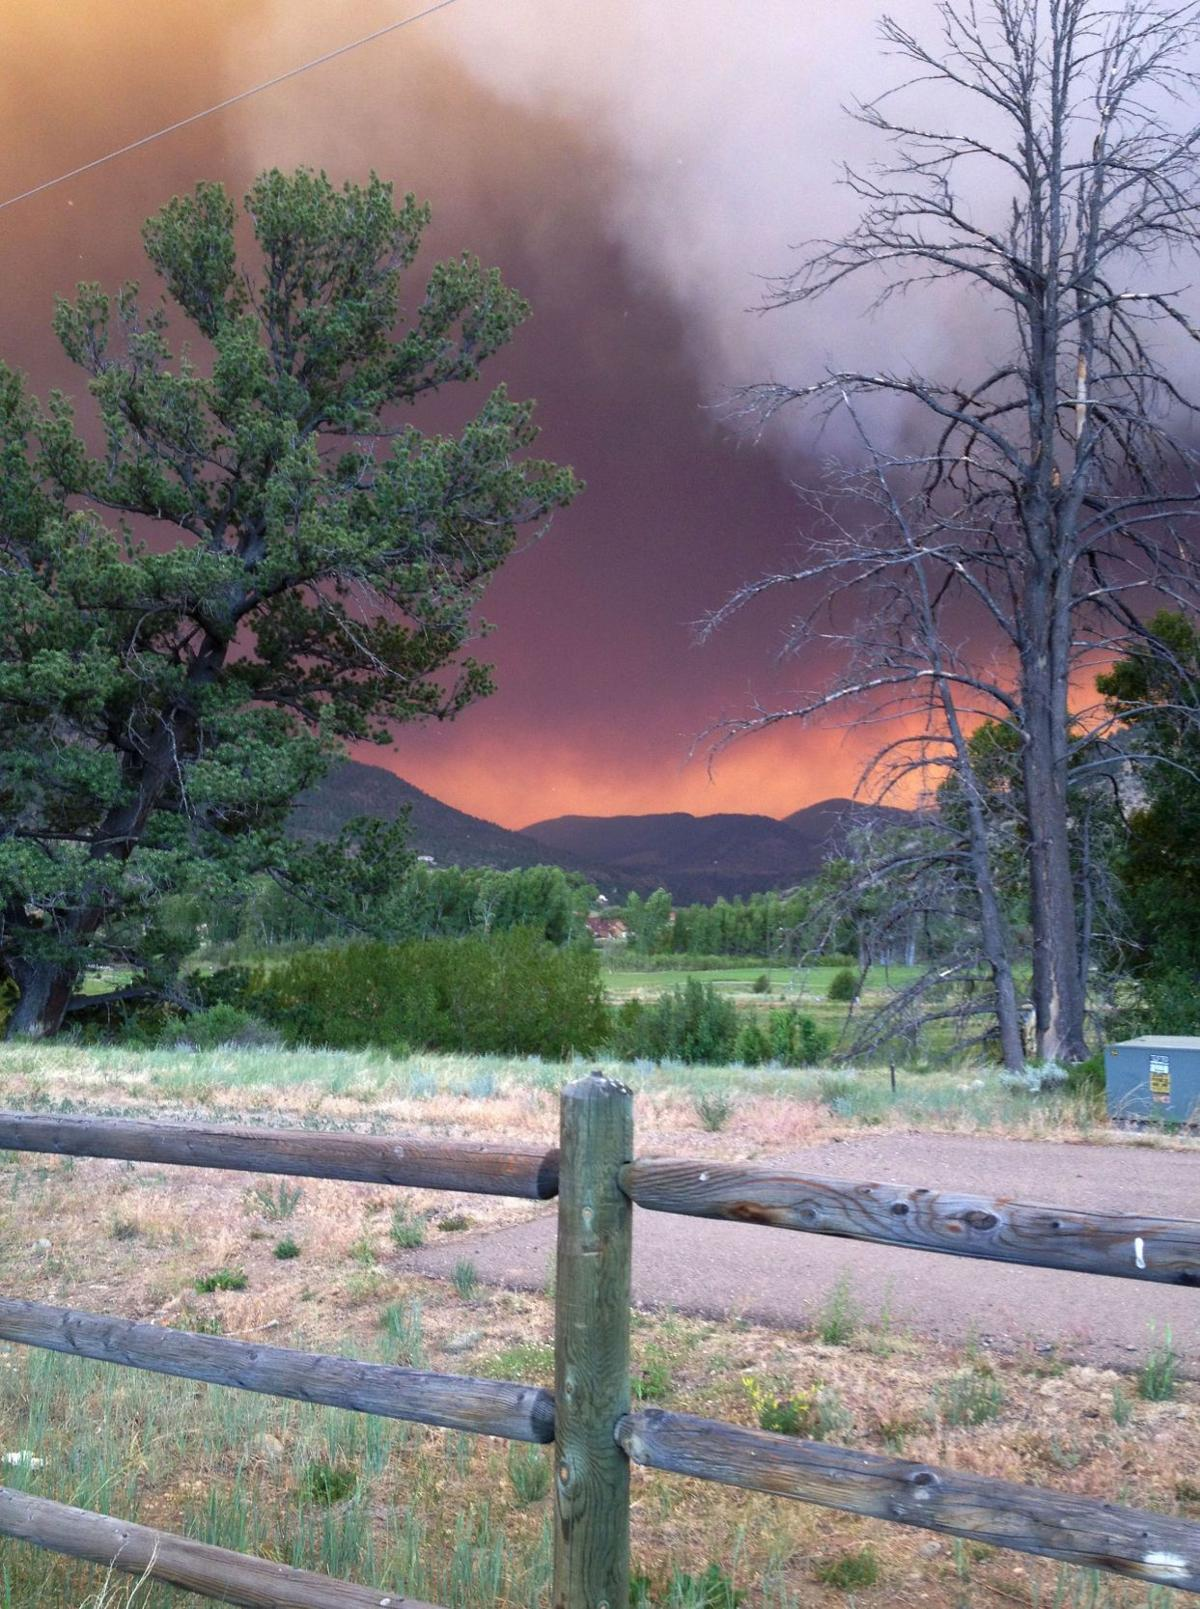 Wildfire threatens to wipe out Colo. town